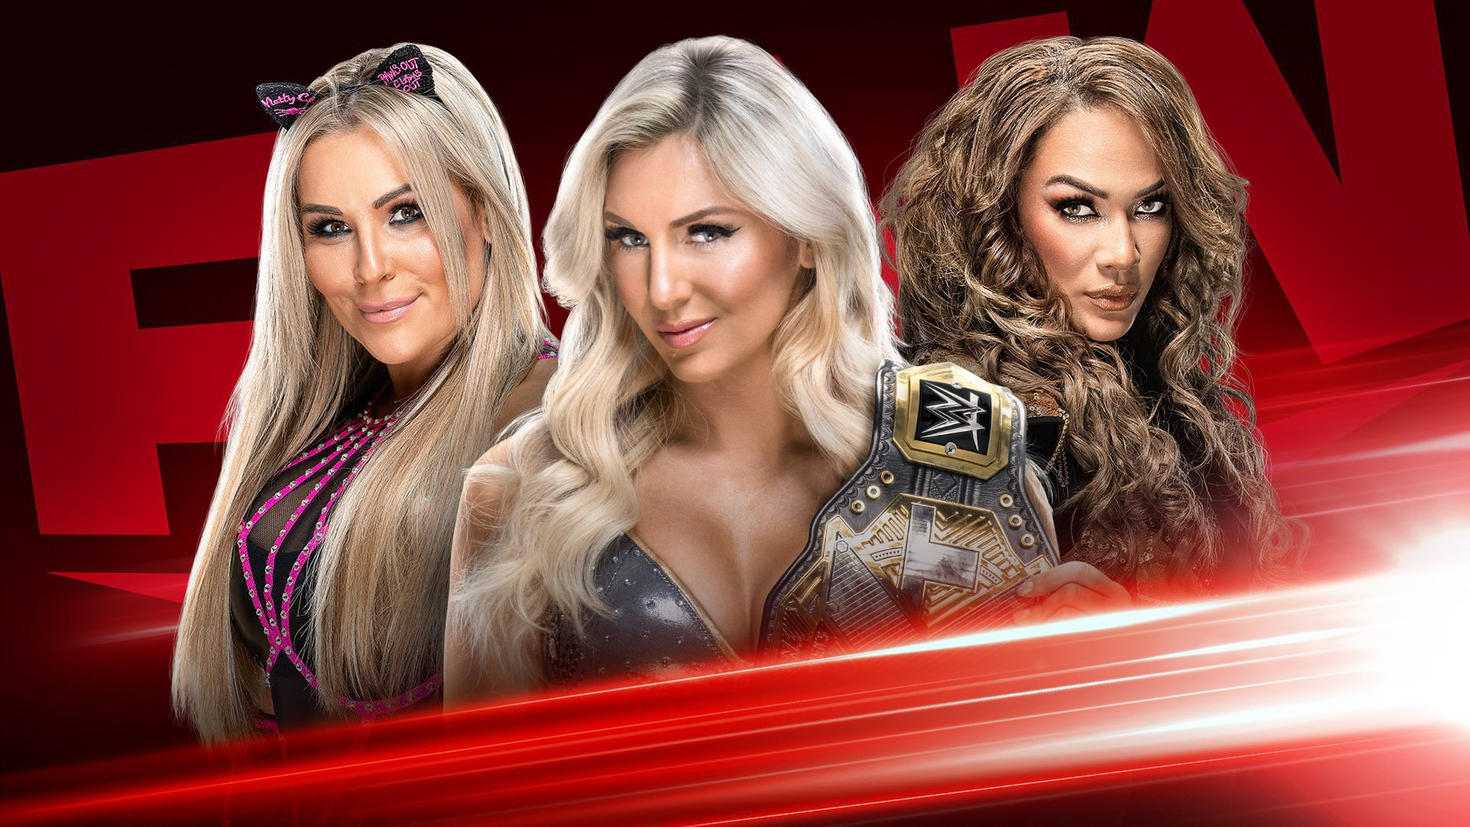 WWE Raw Preview (25/05/20): US Title Match, McIntyre-VIP Lounge, Triple Threat 1